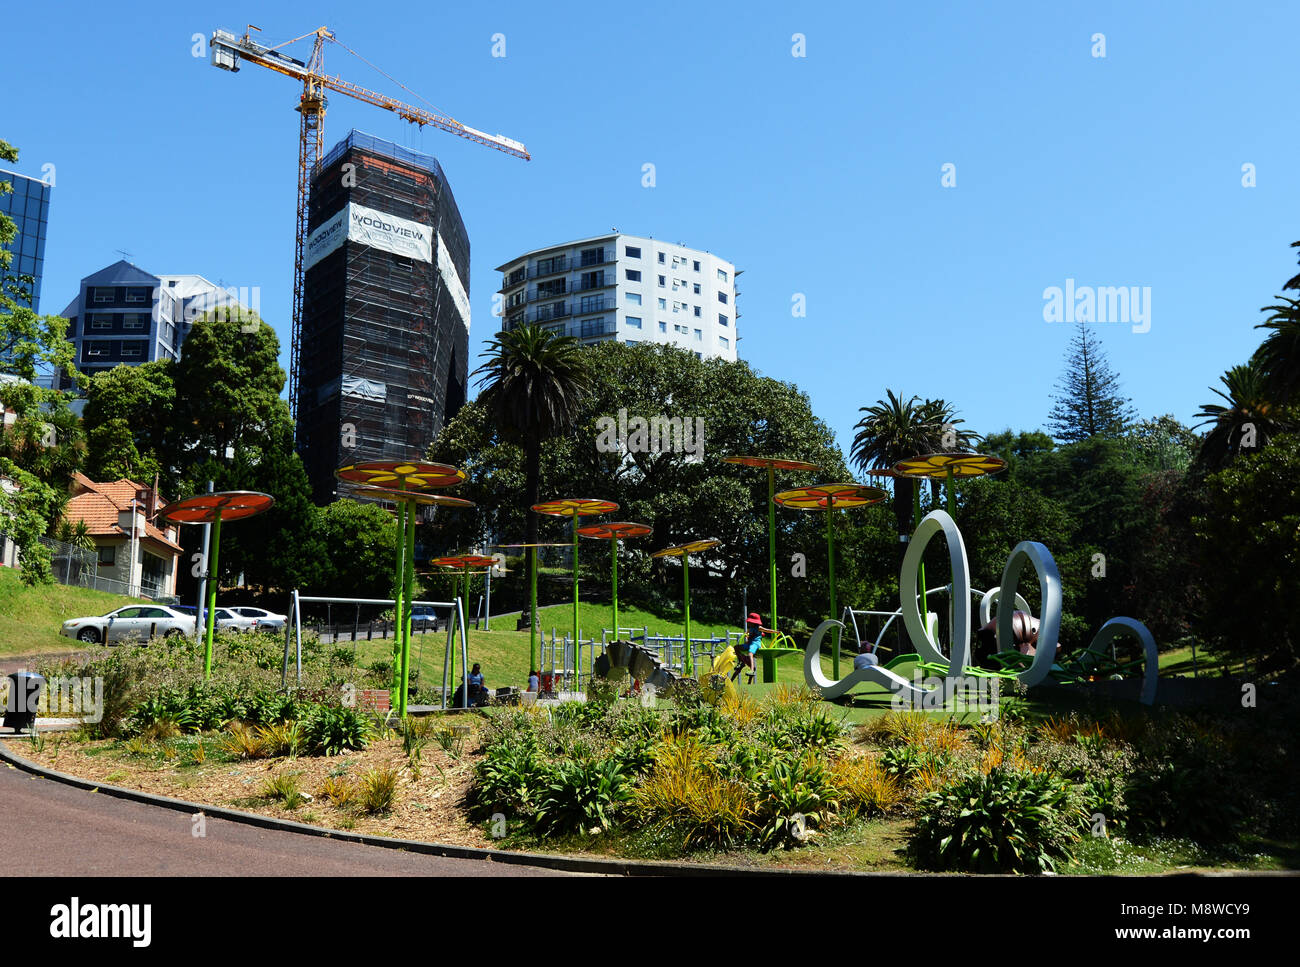 Myers park in Auckland, New Zealand. - Stock Image